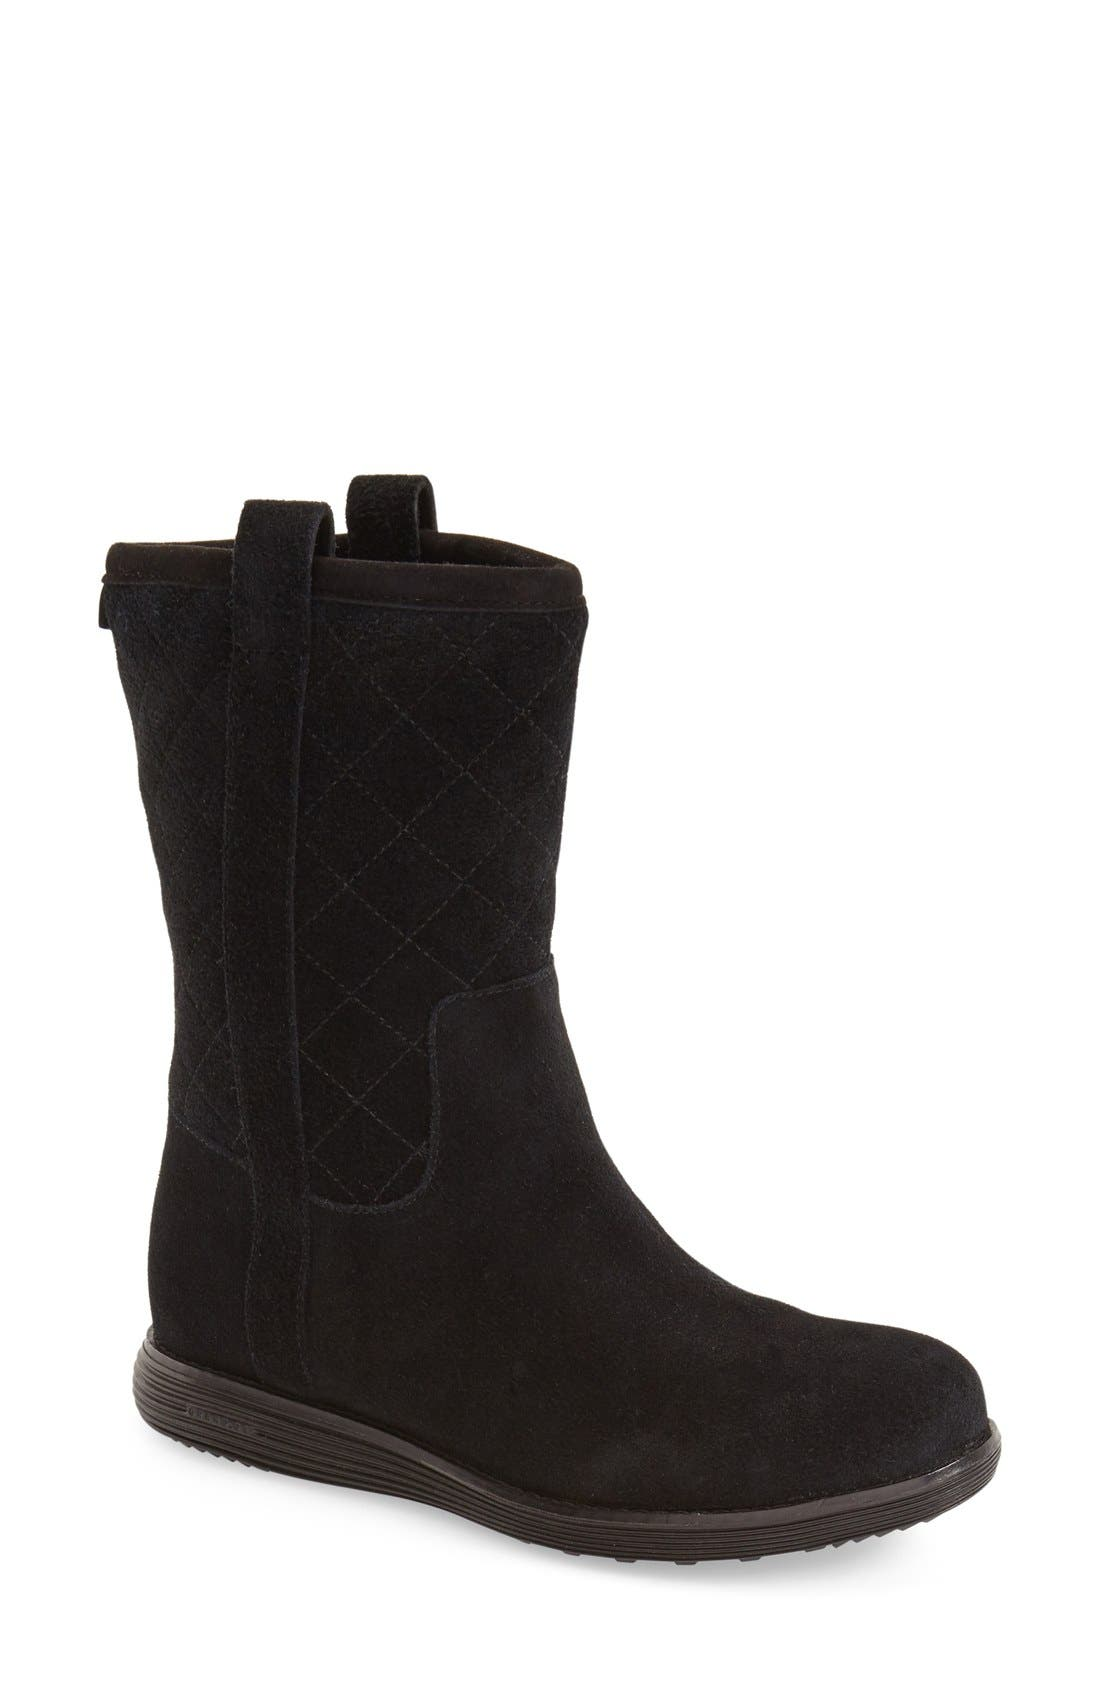 'Roper' Waterproof Boot,                         Main,                         color, Black Suede